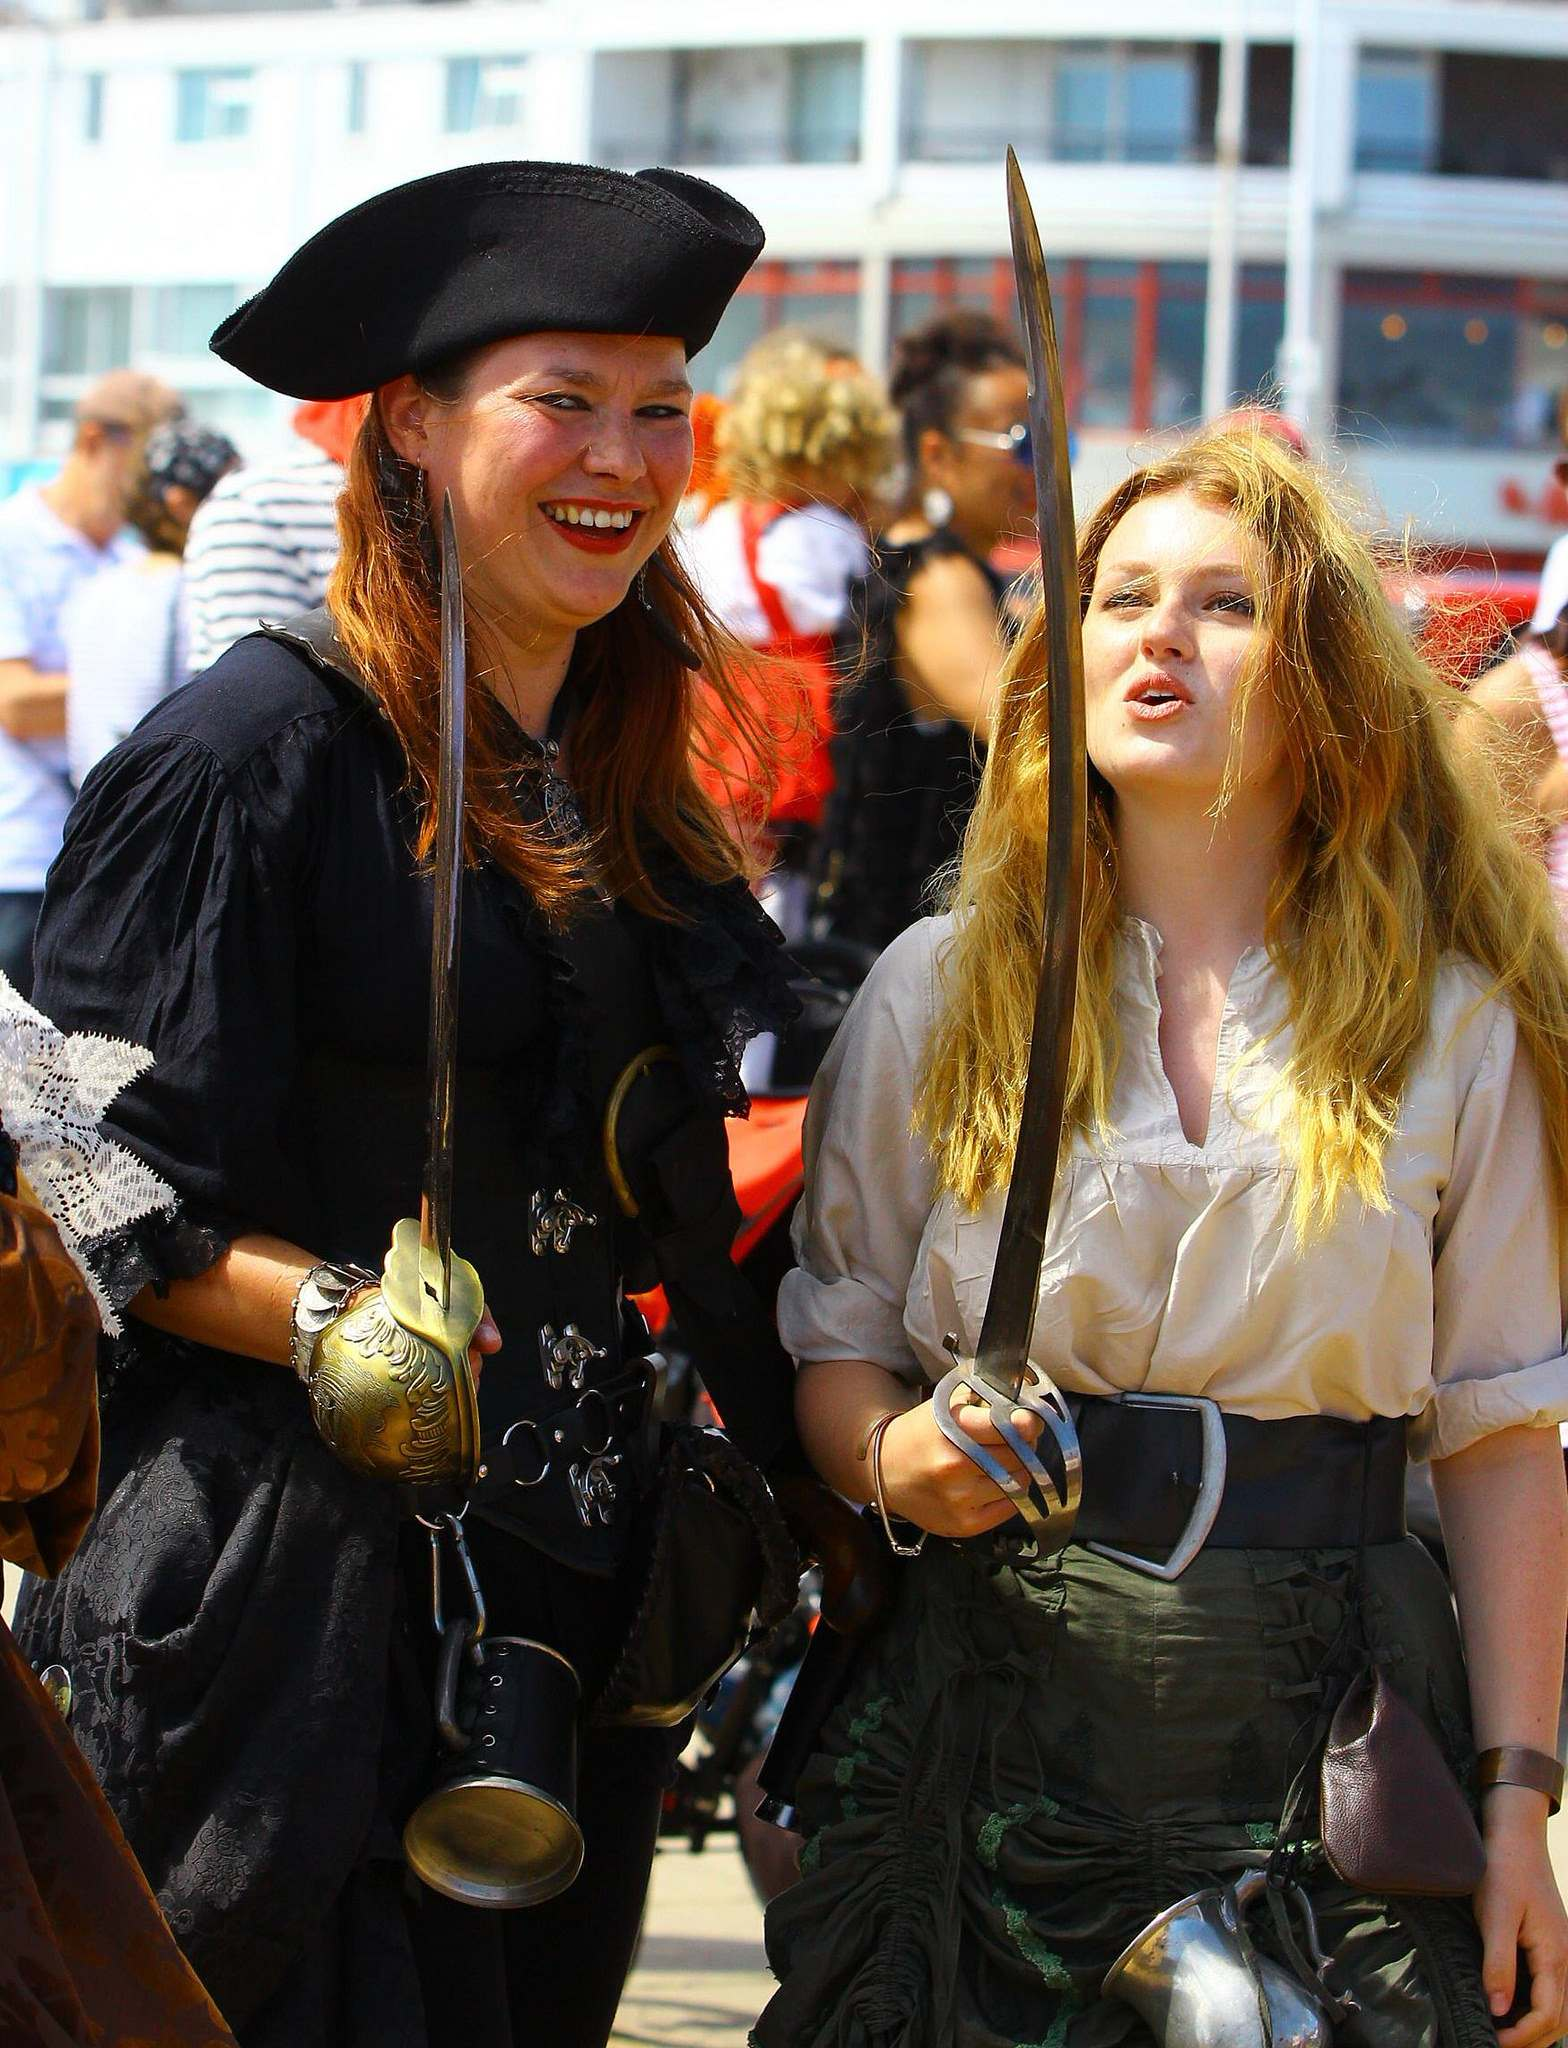 pirate 20165 Hastings Pirate Day 2016